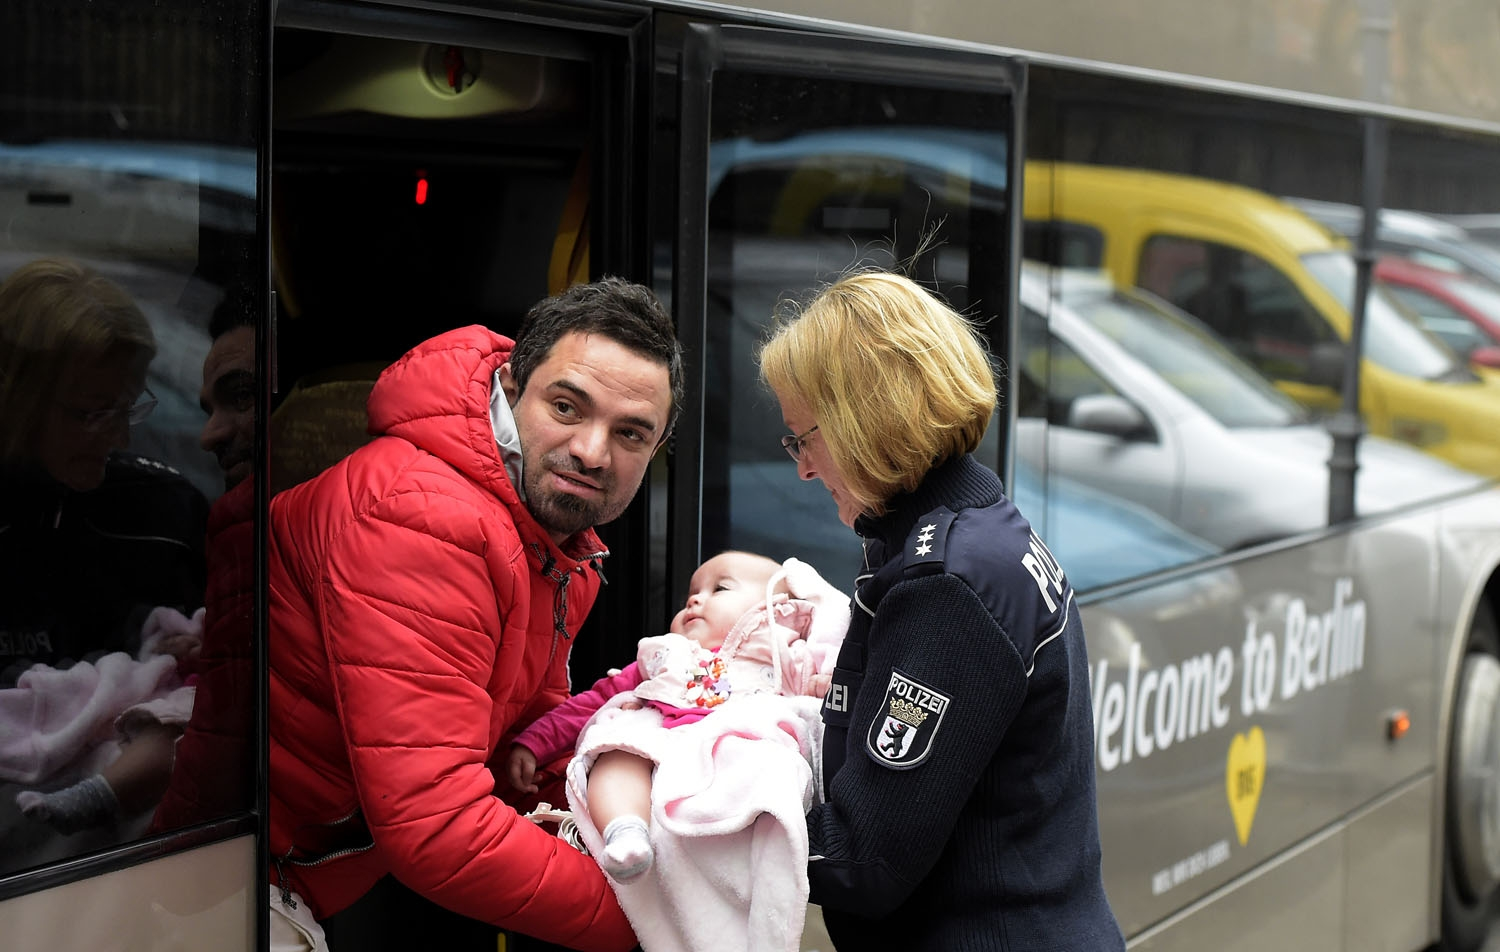 A German police woman helps a man carrying a baby into a bus outside the registration office of the State Office of Health and Social Affairs (LAGeSo) in Berlin on March 11, 2016. / AFP PHOTO / TOBIAS SCHWARZ